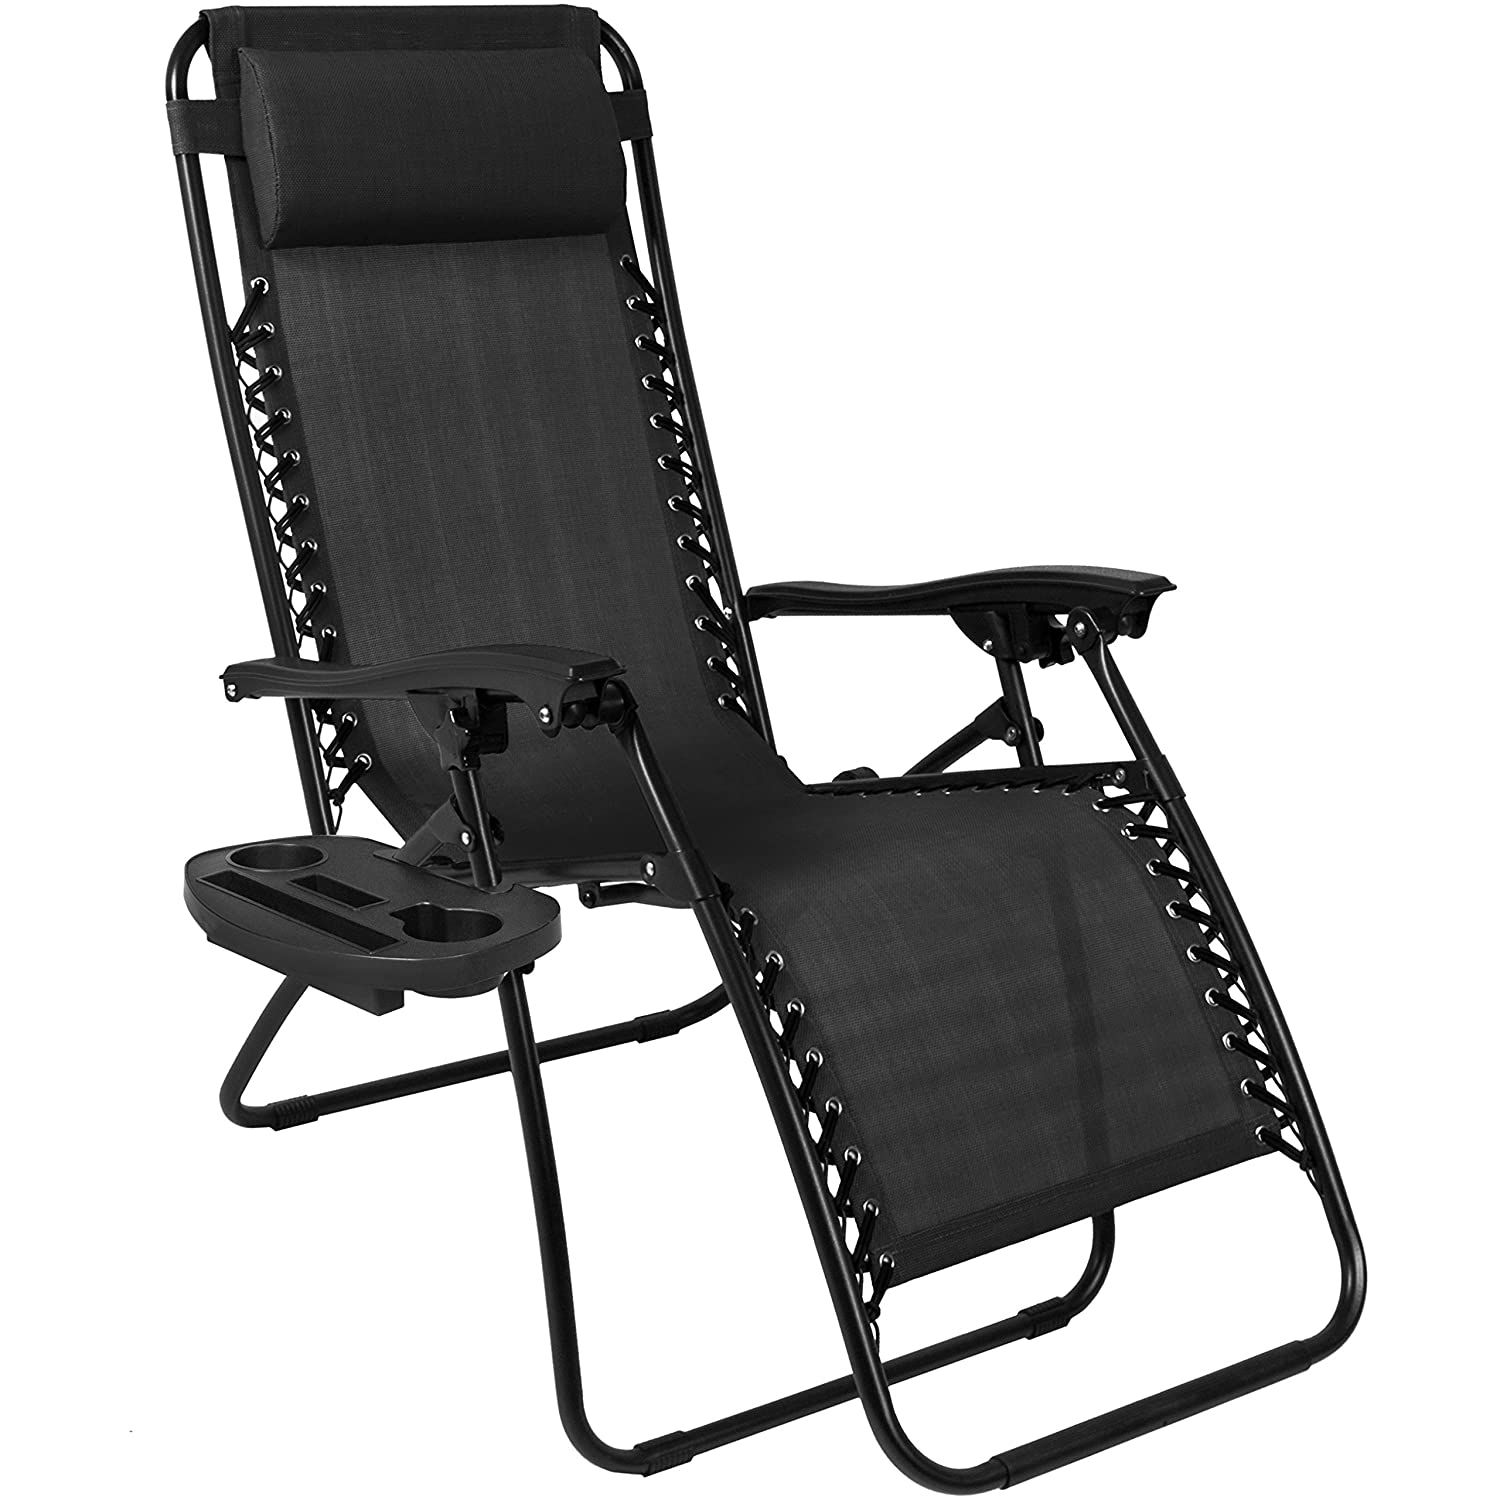 best choice products zero gravity chairs case of 2 black lounge patio chairs outdoor yard beach new - Beach Lounge Chairs